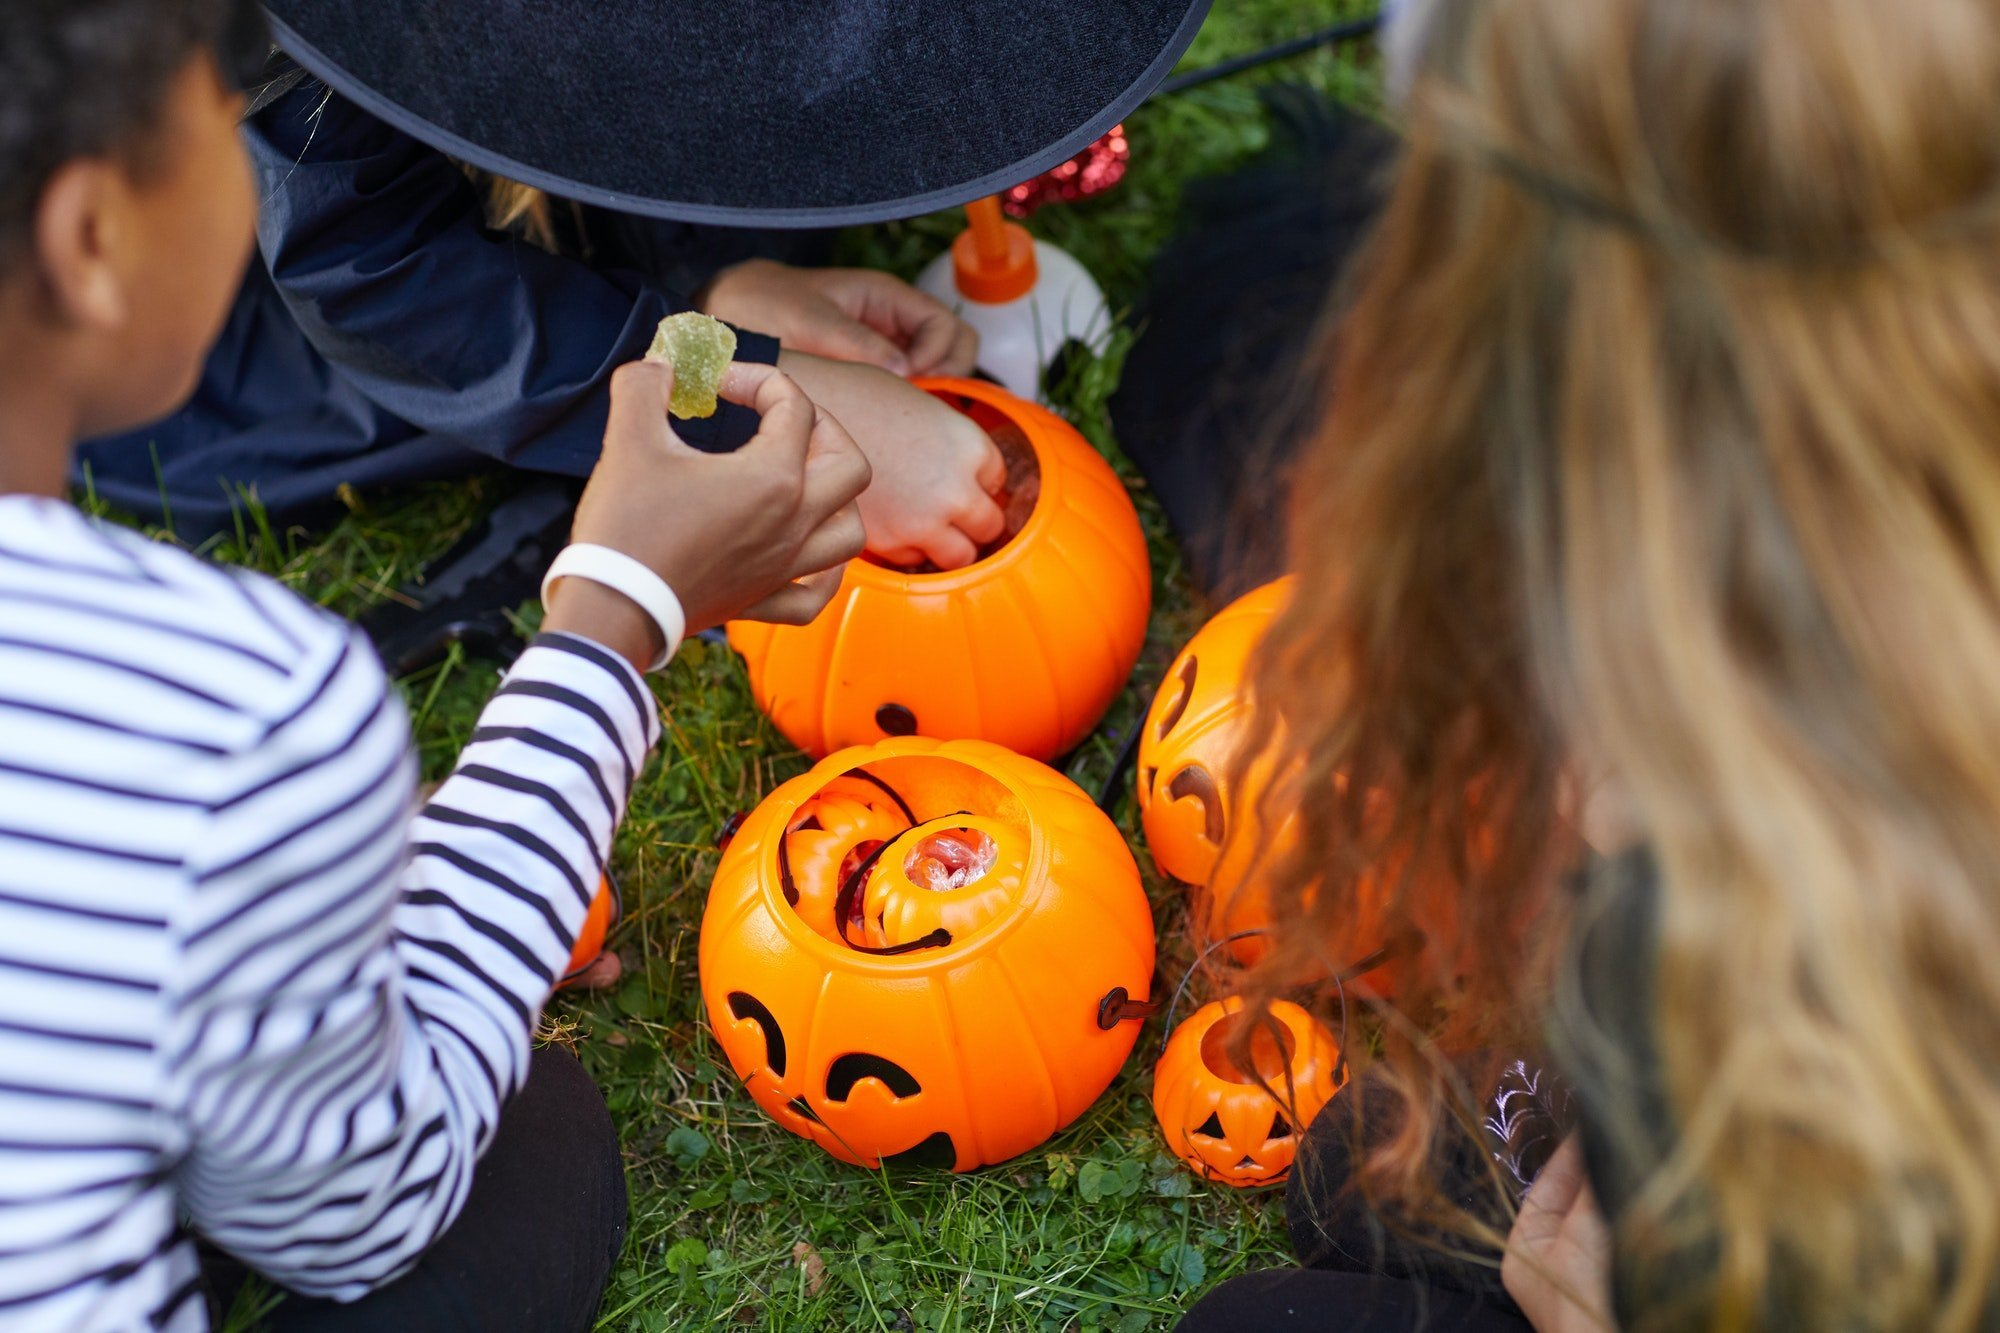 is holloween candy bad for kids teeth?